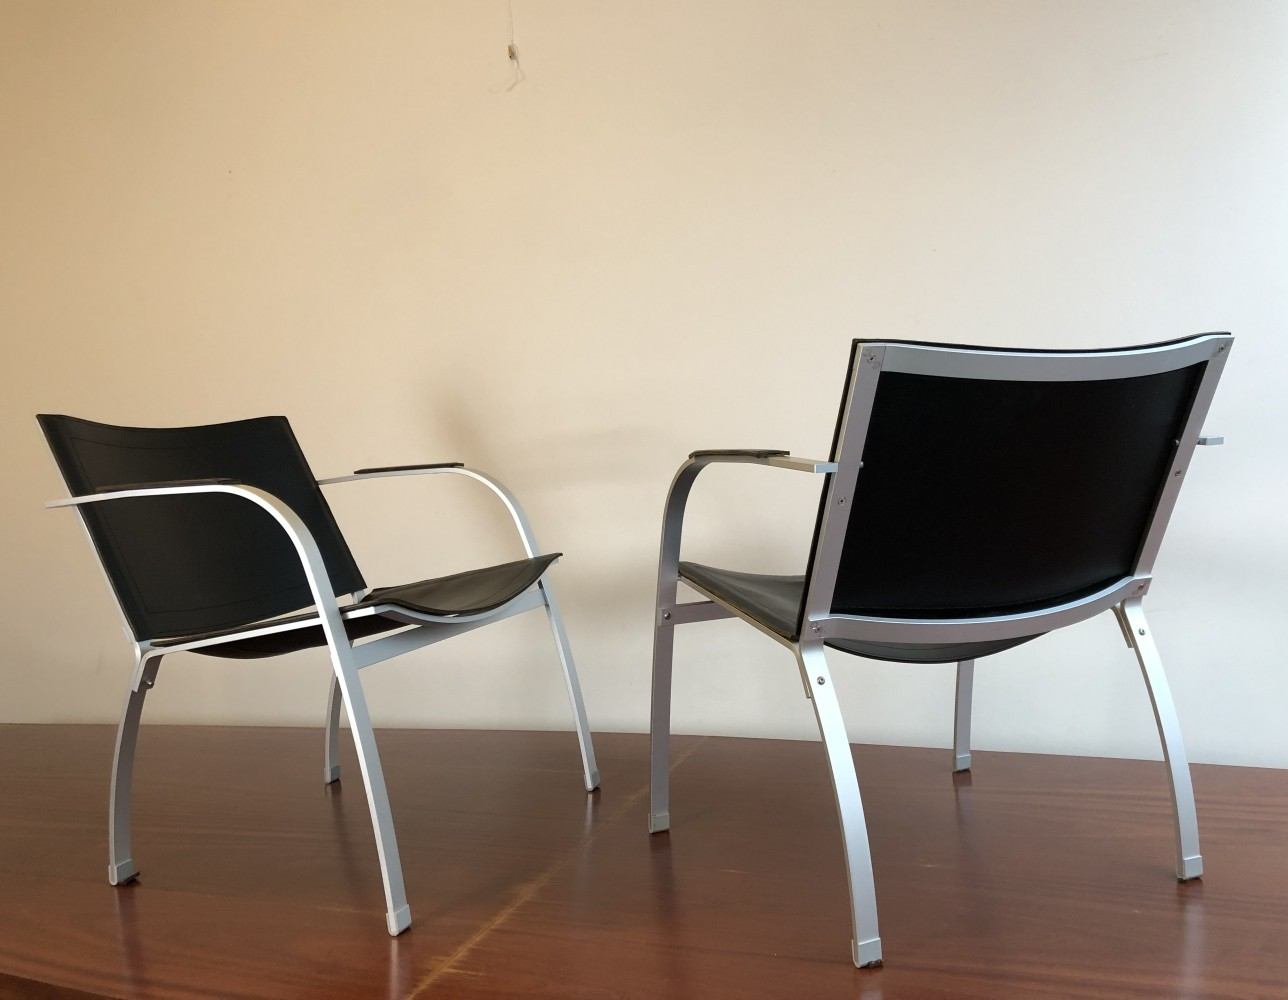 Pair of IKEA lounge chairs, 1990s